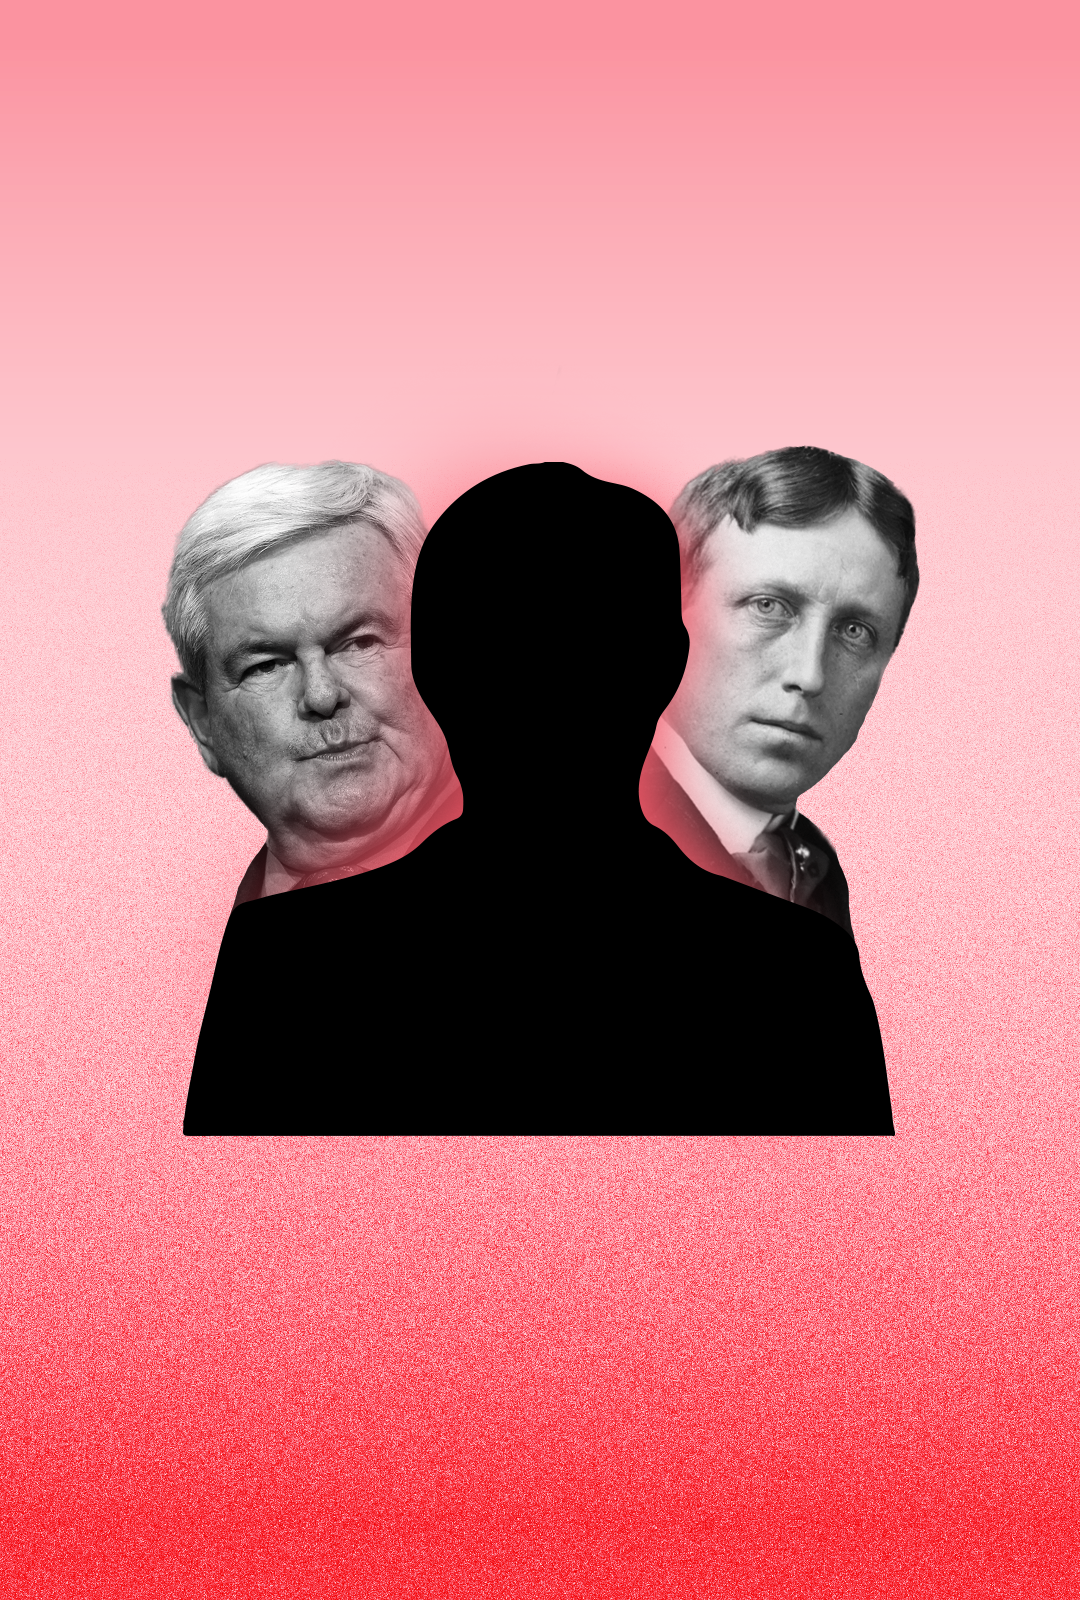 A mysterious silhouette rests center a red background. Peeking behind on the right is W. Hurst, from the left is N. Gingrich.